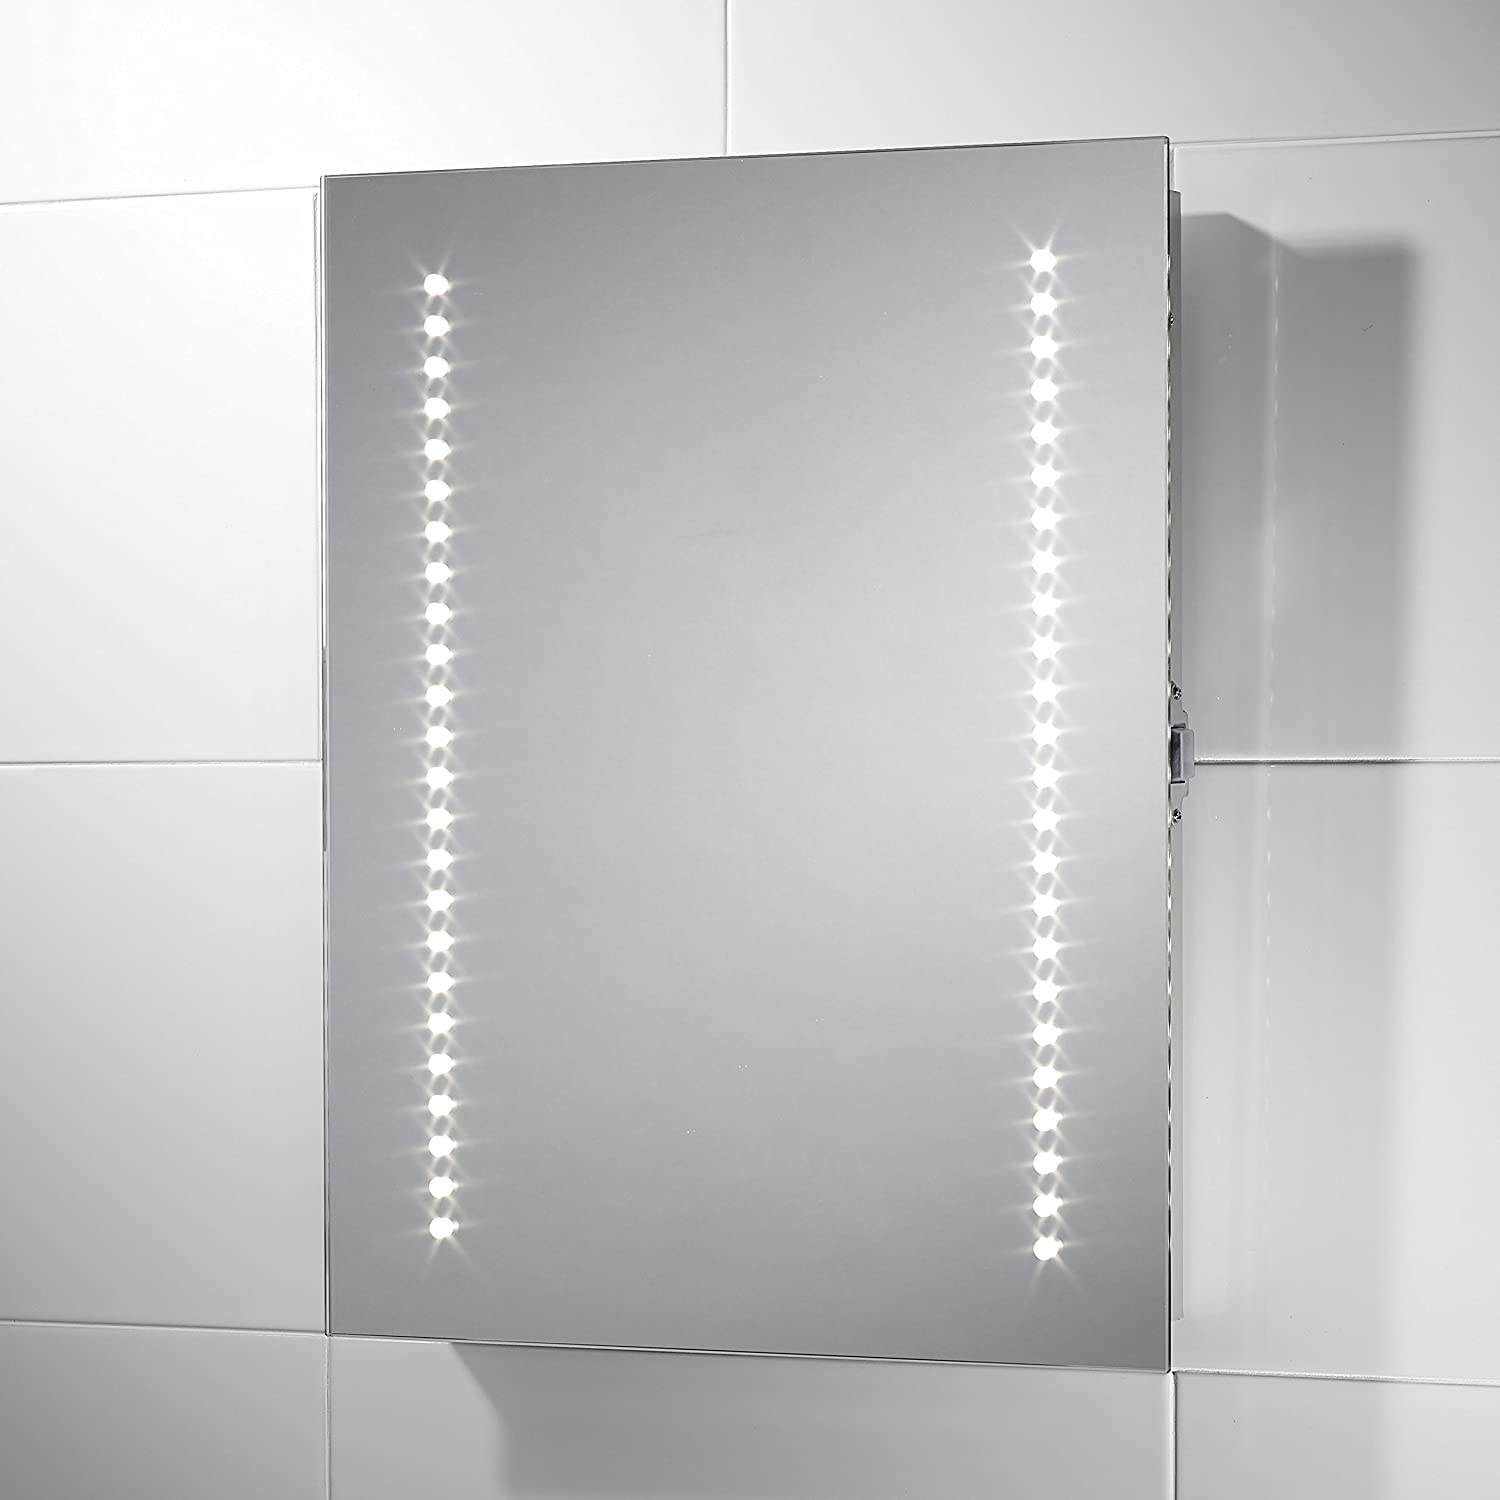 Pebble Grey Small Rectangular Viva LED Illuminated Bathroom Mirror Size 390mmW X 500mmH With Infra Red Sensor Switch Dual Voltage Shaver Socket And